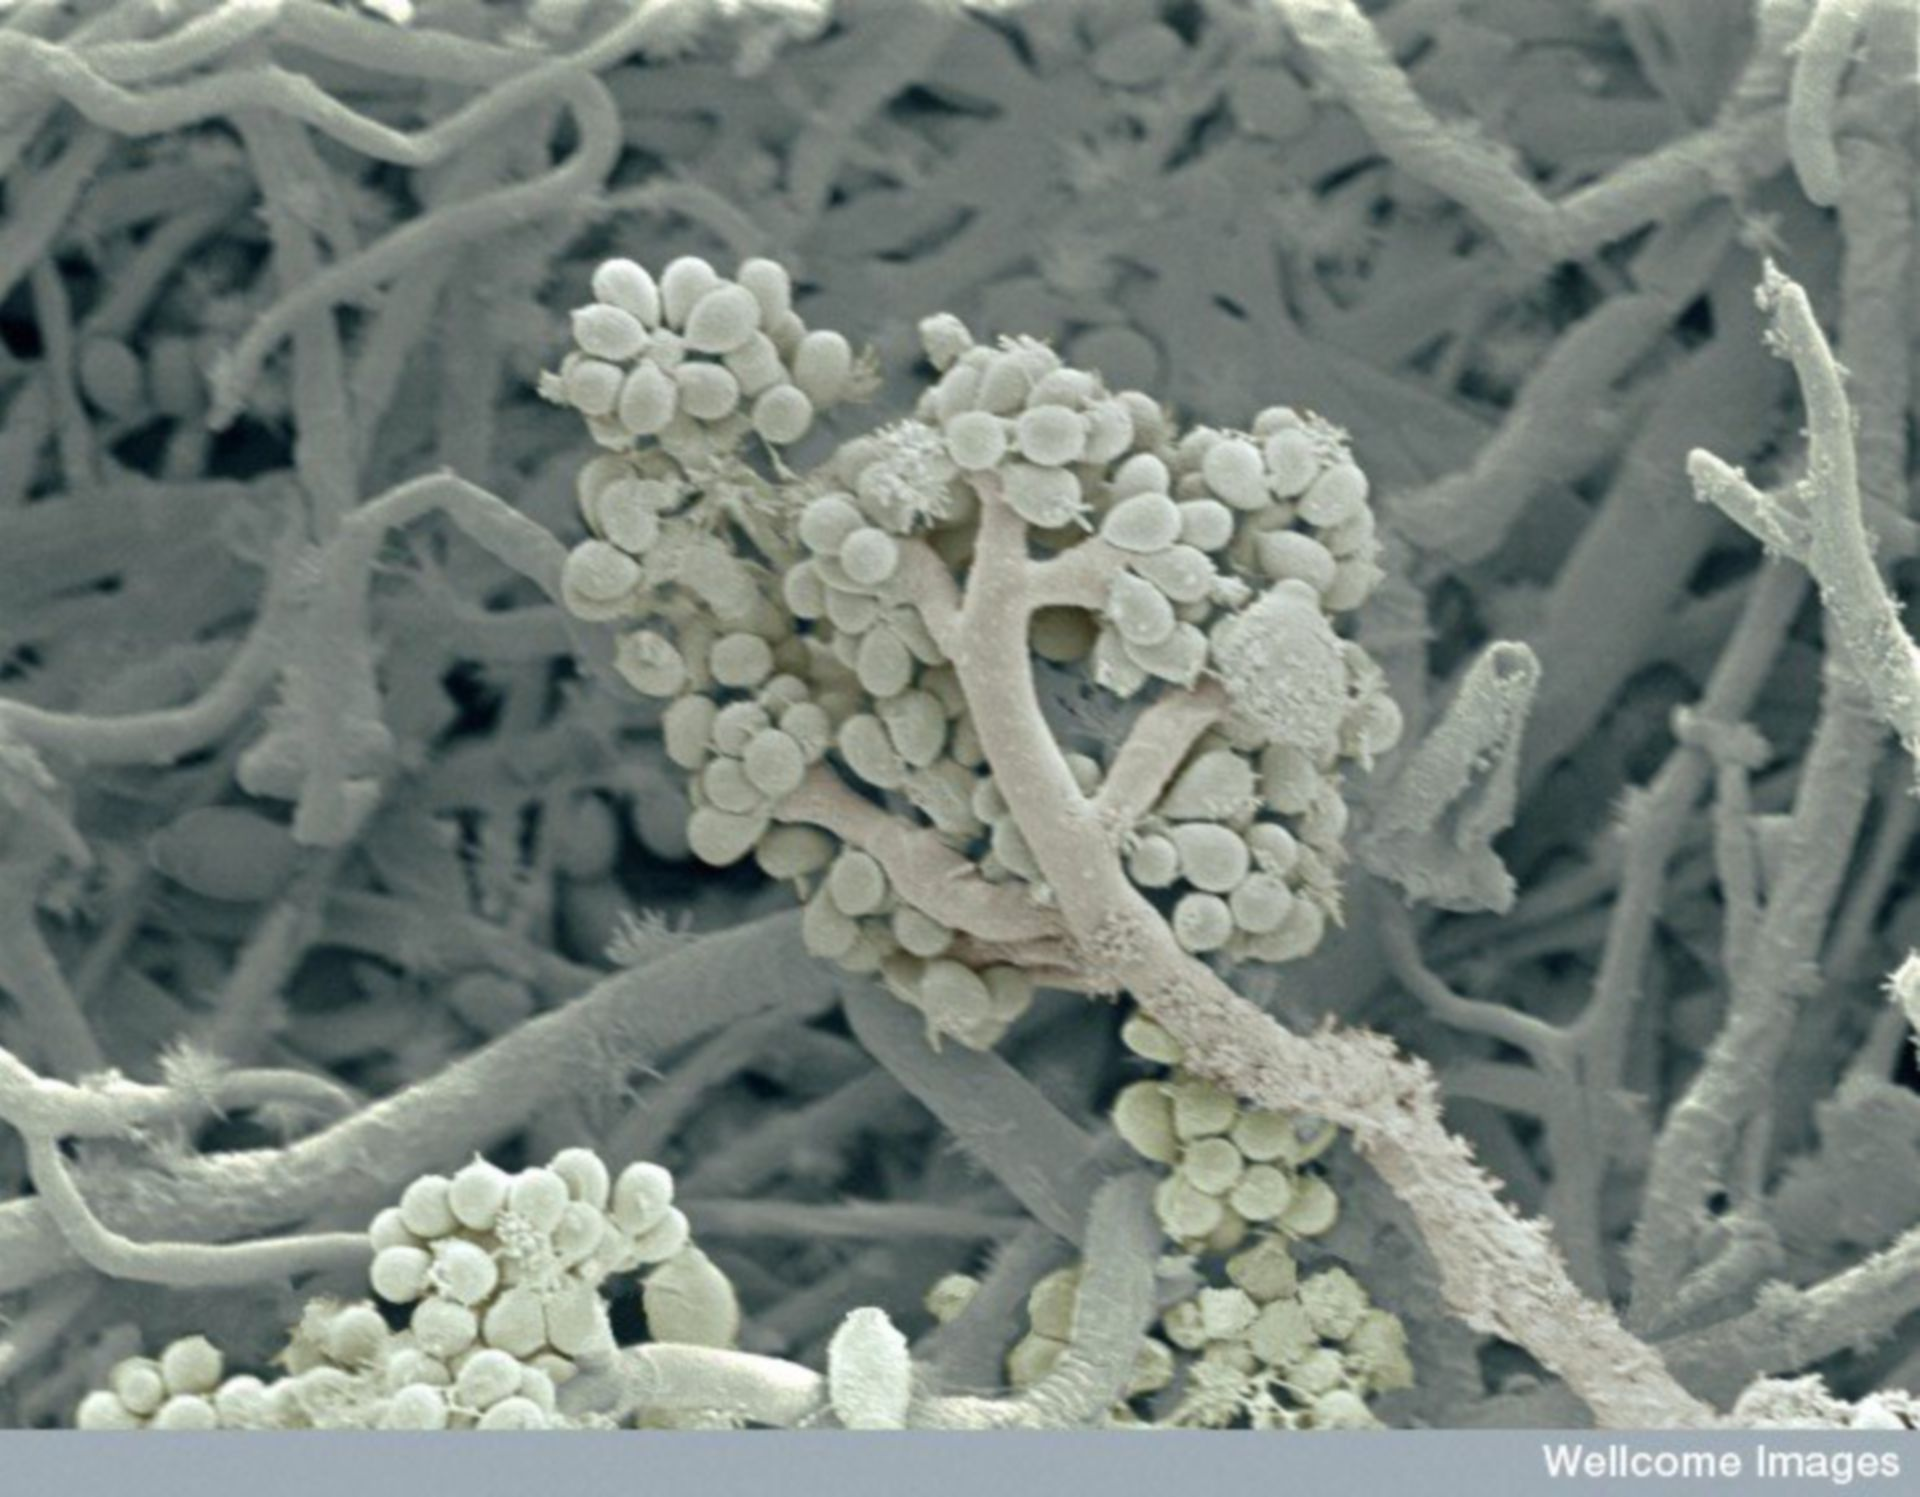 Image of the Week - May 23, 2016 - CIL:38927 - http://www.cellimagelibrary.org/images/38927